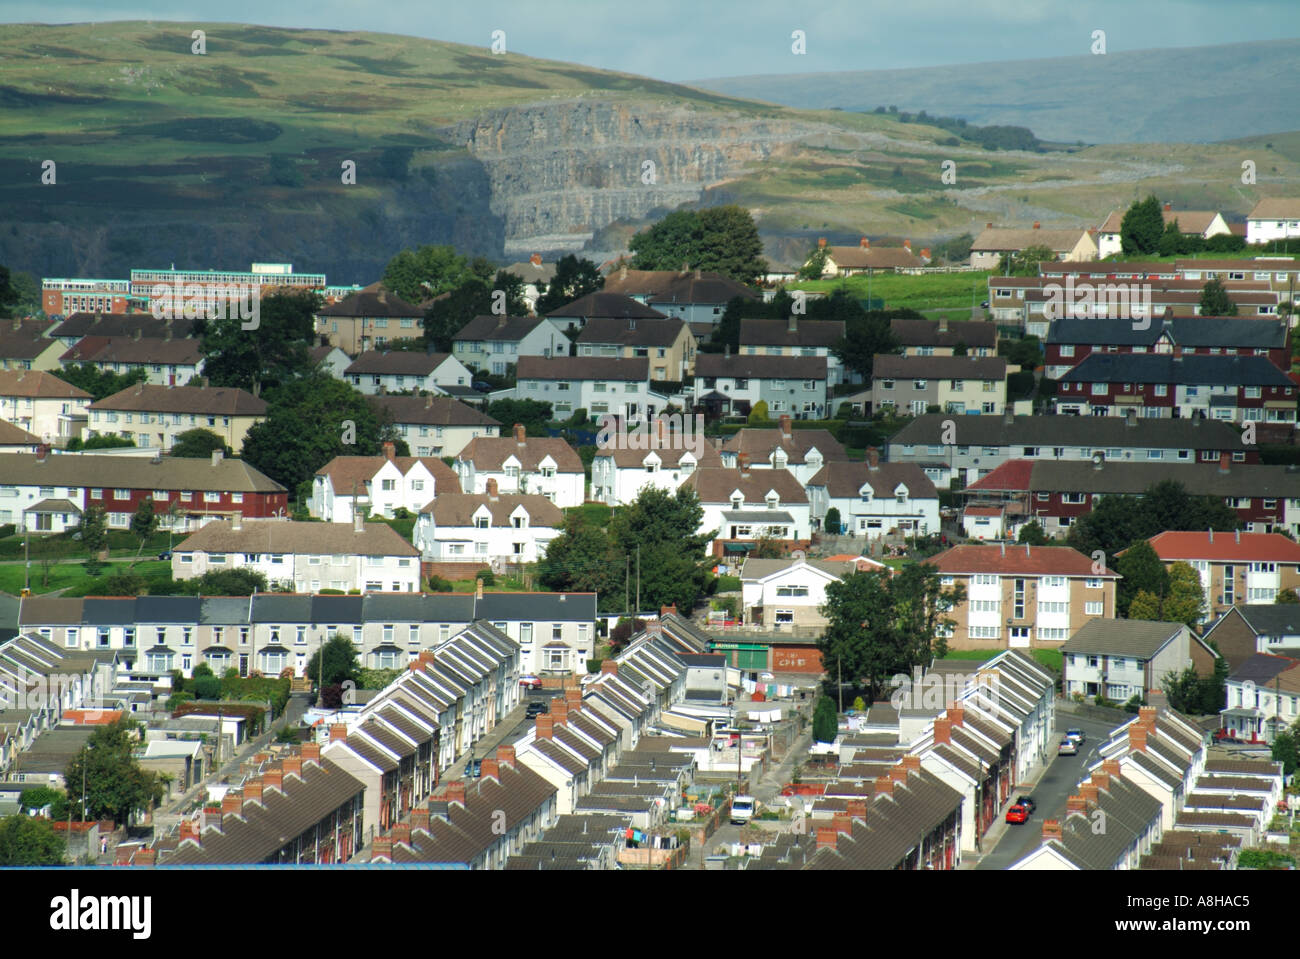 Suburbs of Merthyr Tydfil looking down semi aerial view housing estates with quarry face in hillside distant - Stock Image